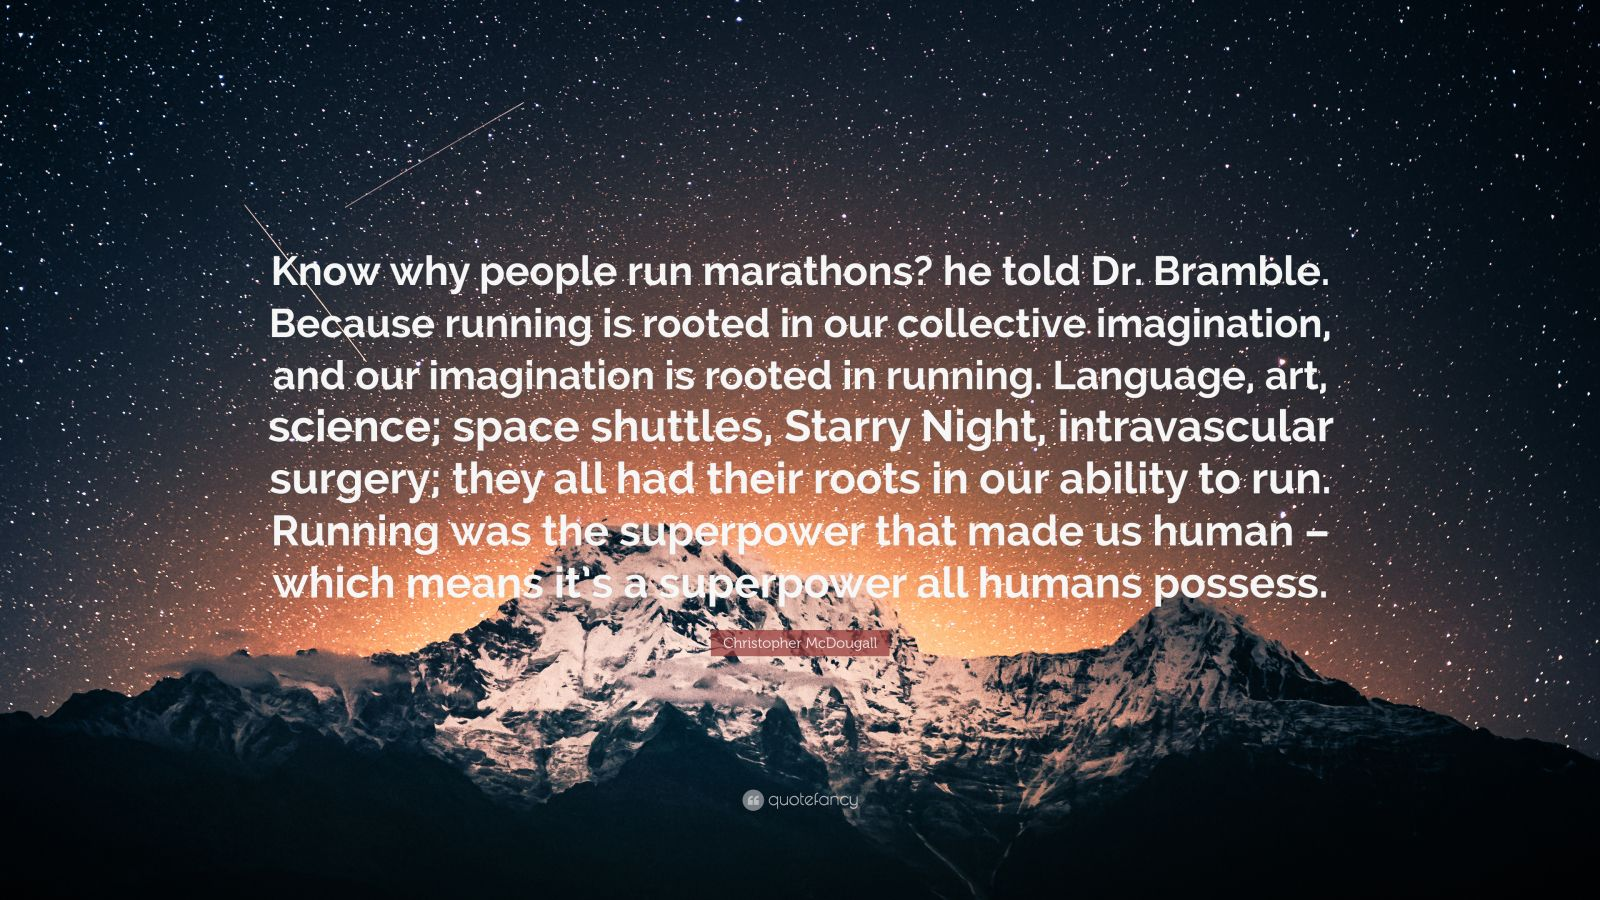 """Christopher McDougall Quote: """"Know why people run marathons? he told Dr. Bramble. Because running is rooted in our collective imagination, and our imagination is rooted in running. Language, art, science; space shuttles, Starry Night, intravascular surgery; they all had their roots in our ability to run. Running was the superpower that made us human – which means it's a superpower all humans possess."""""""